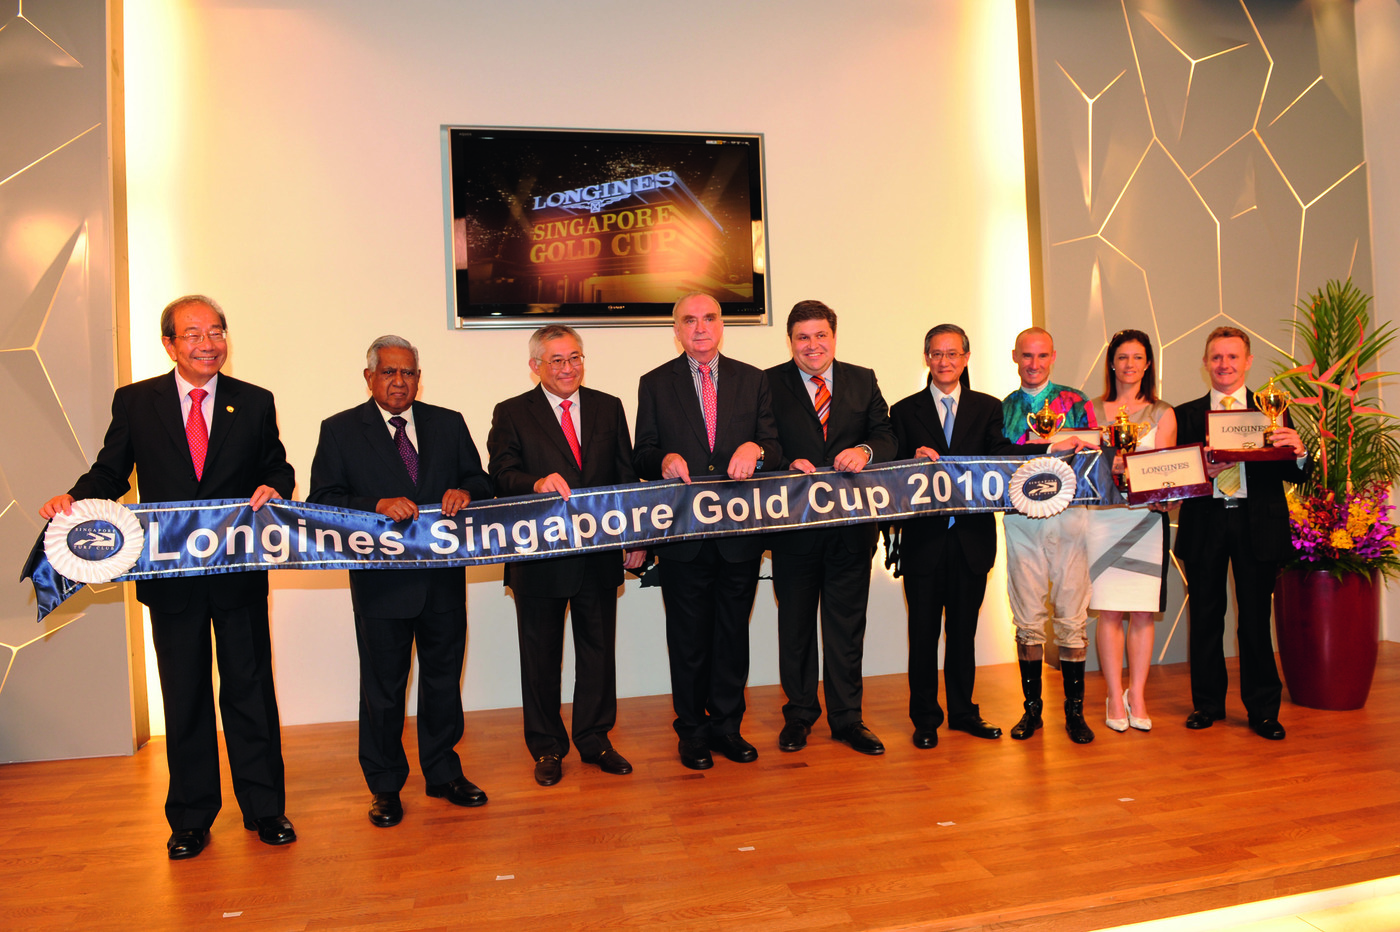 Longines Flat Racing Event: Longines embarks on landmark partnership with the Singapore Turf Club and launches the Longines Singapore Gold Cup 7